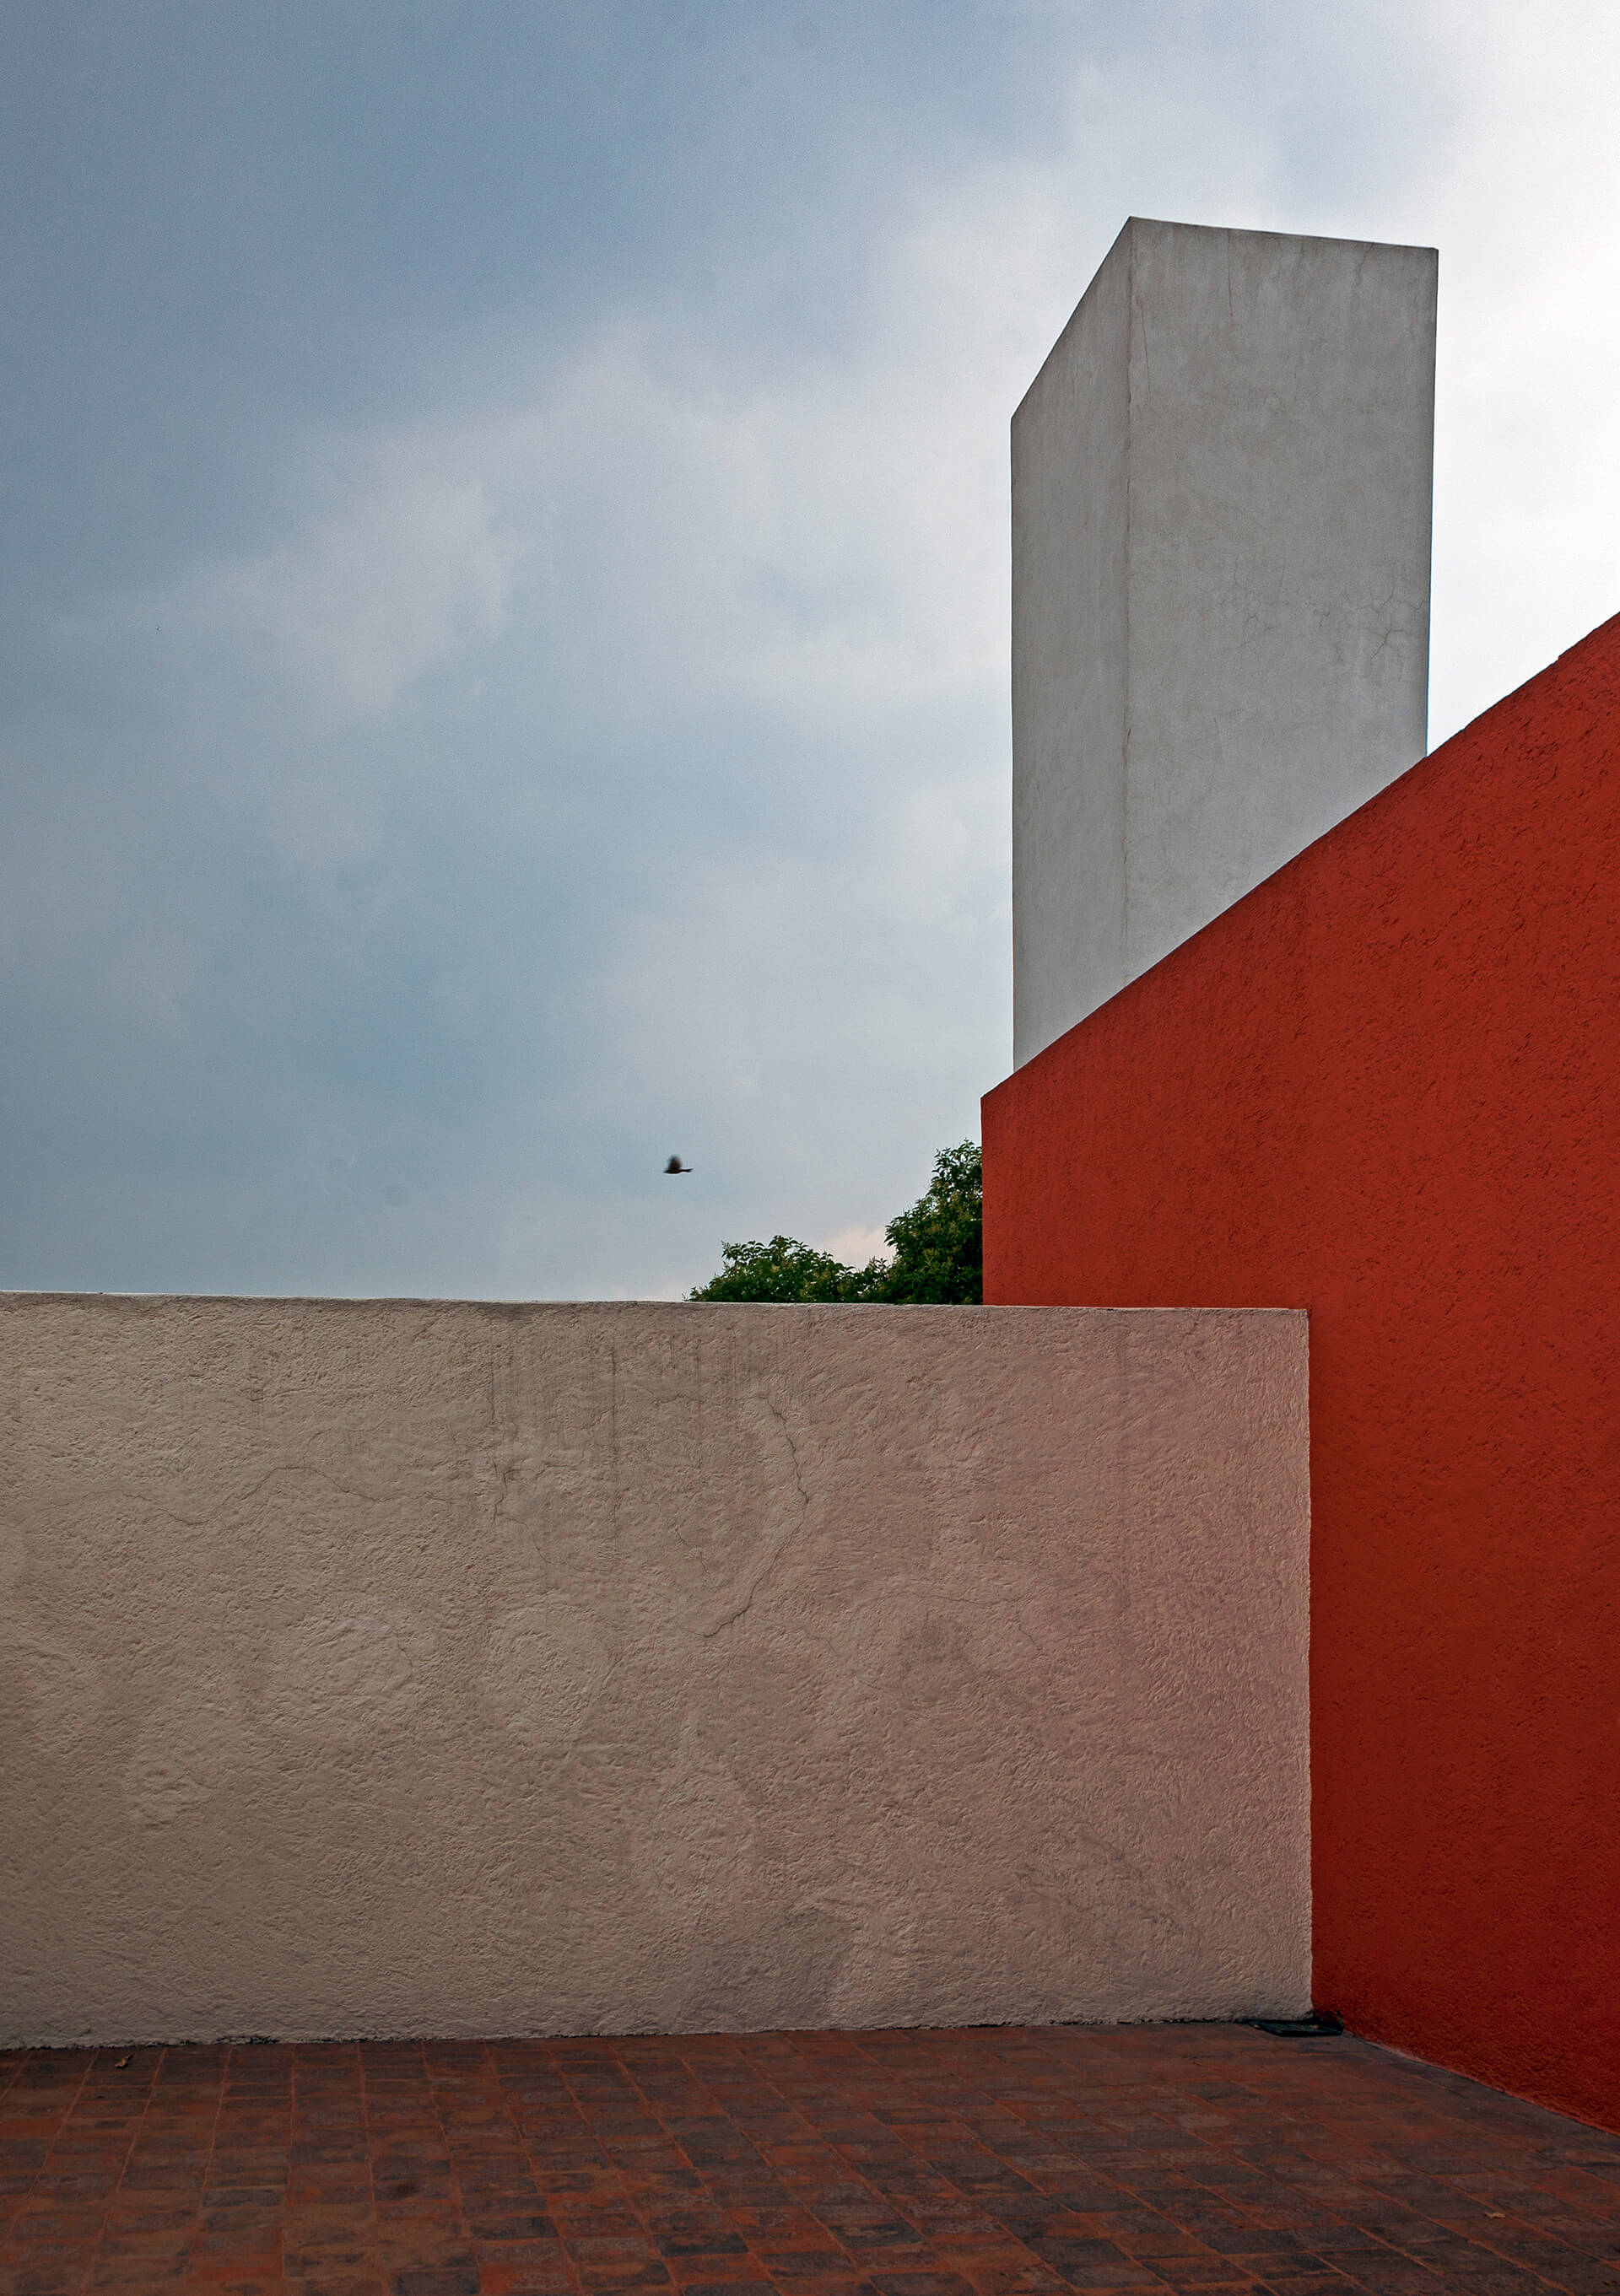 Luis Barragán's house and studio, under stormy skies | Luis Barragán | STIRworld